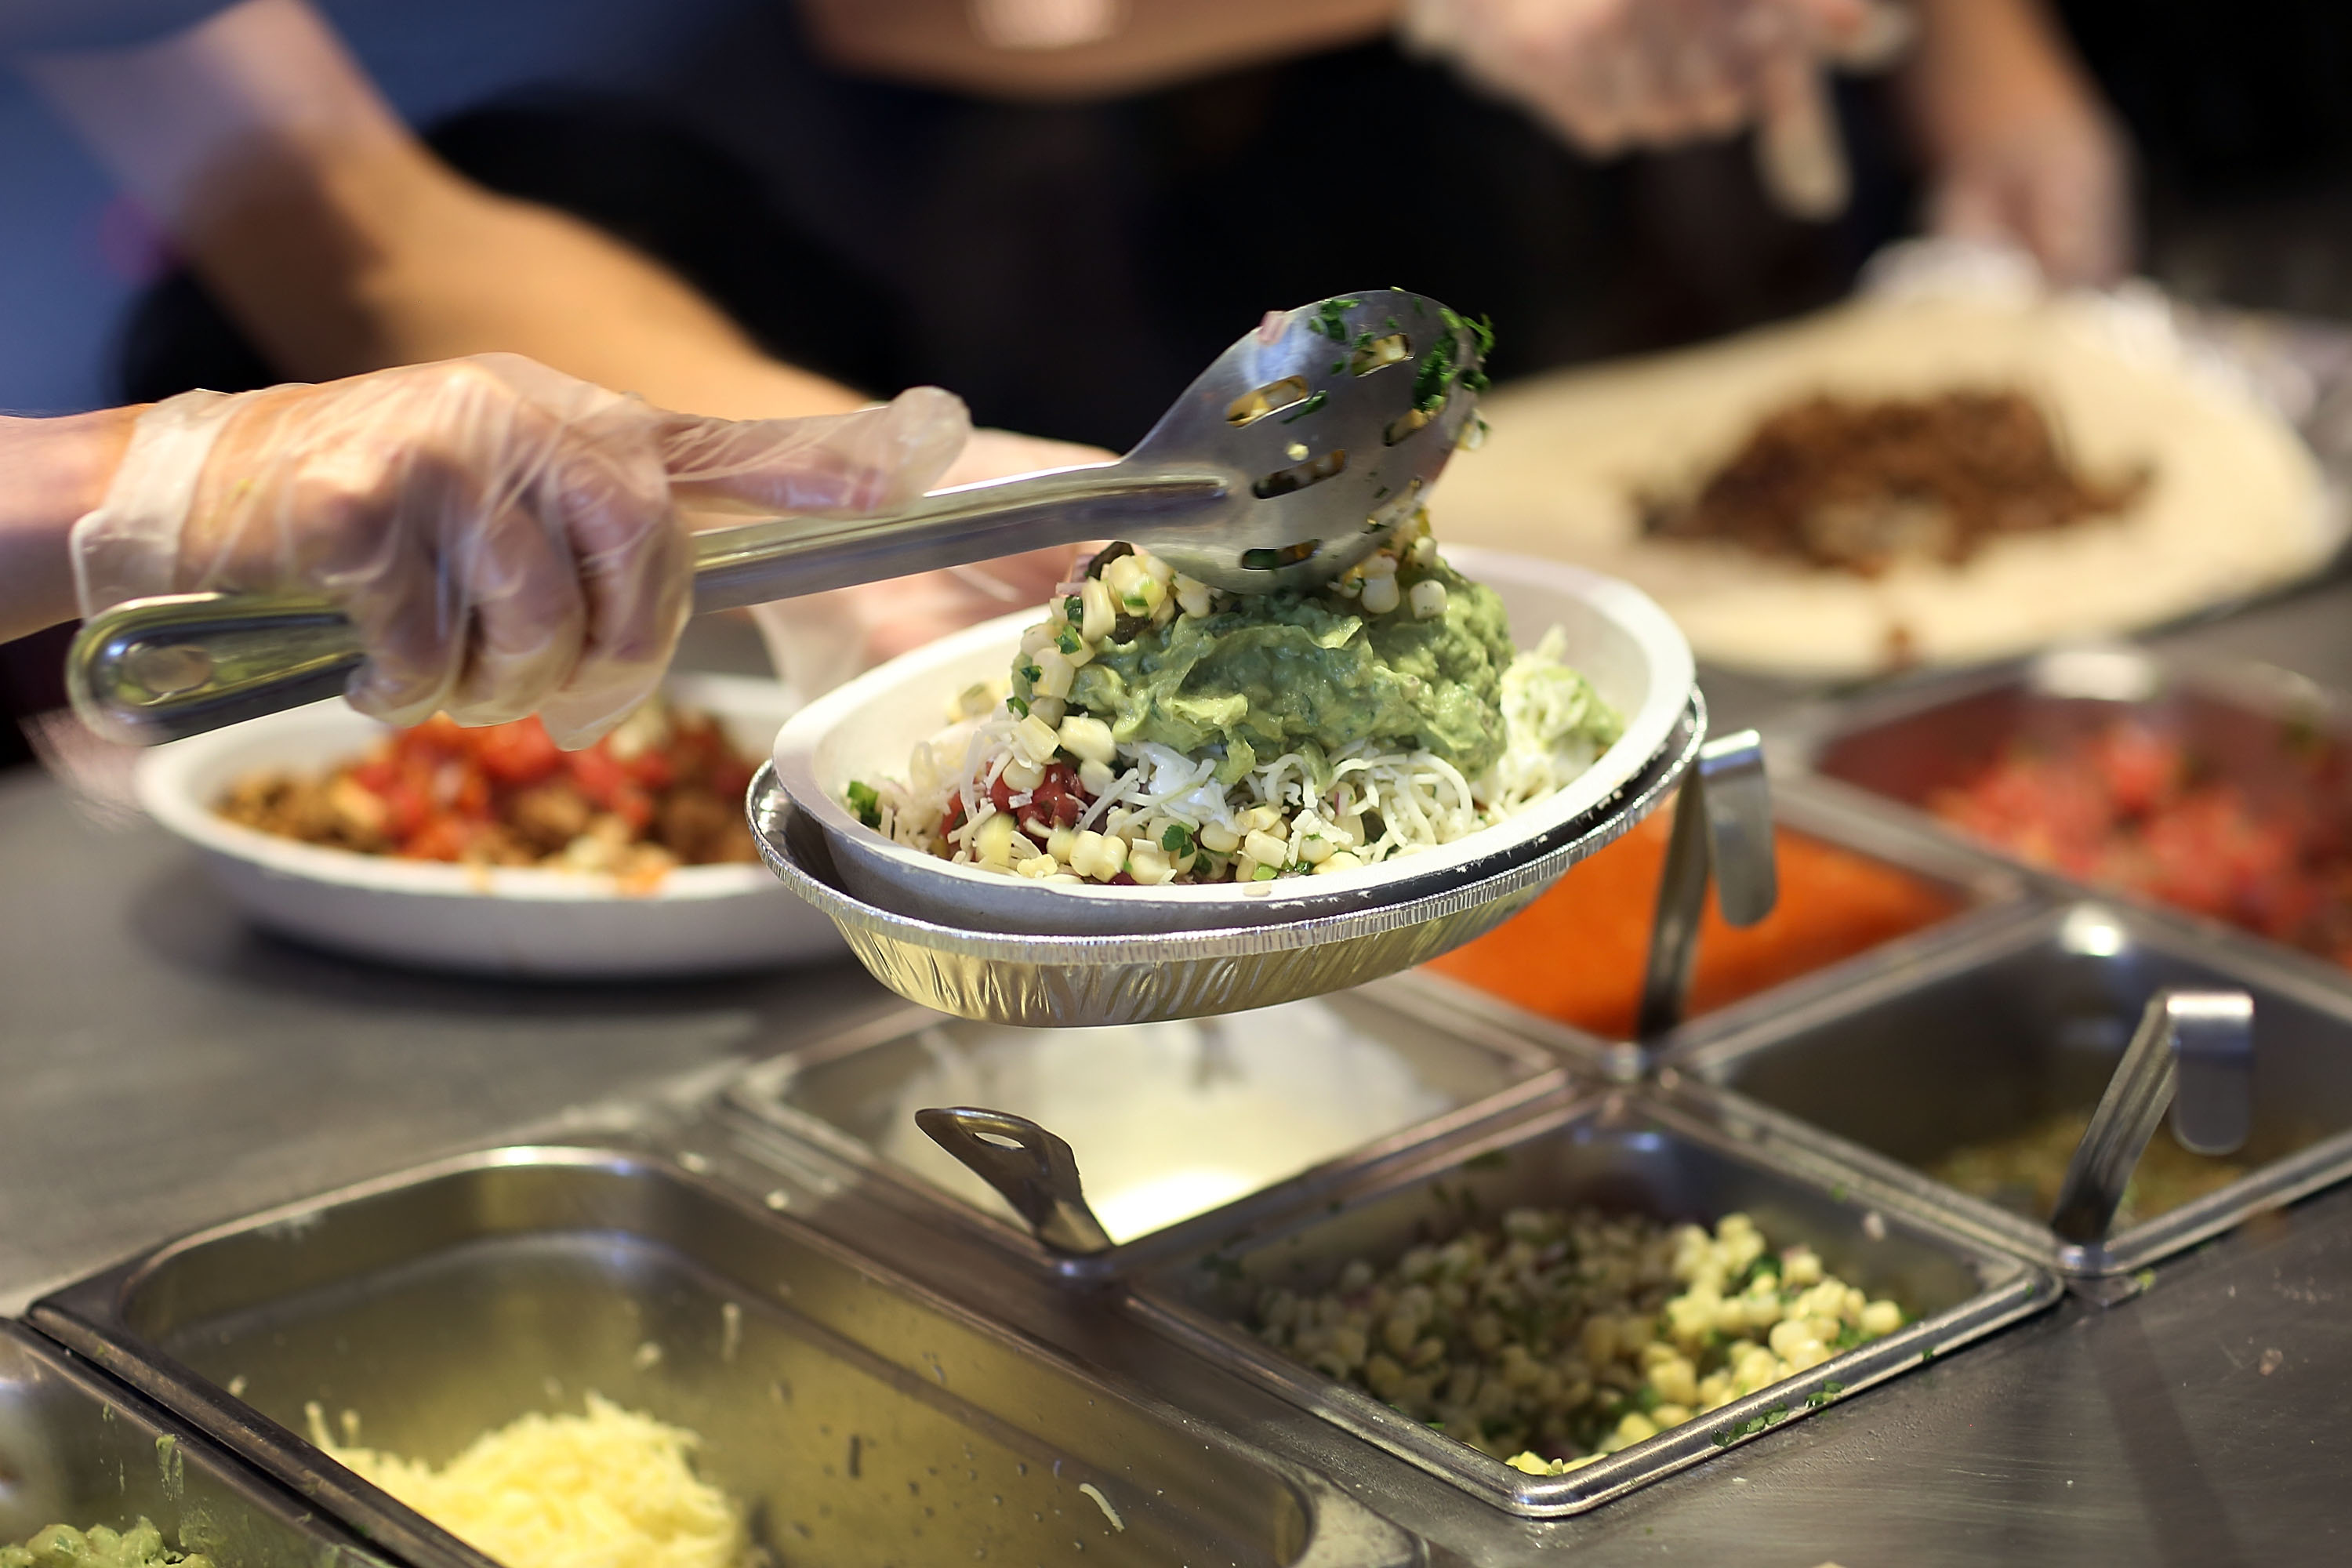 Chipotle Becomes First Non-GMO US Restaurant Chain